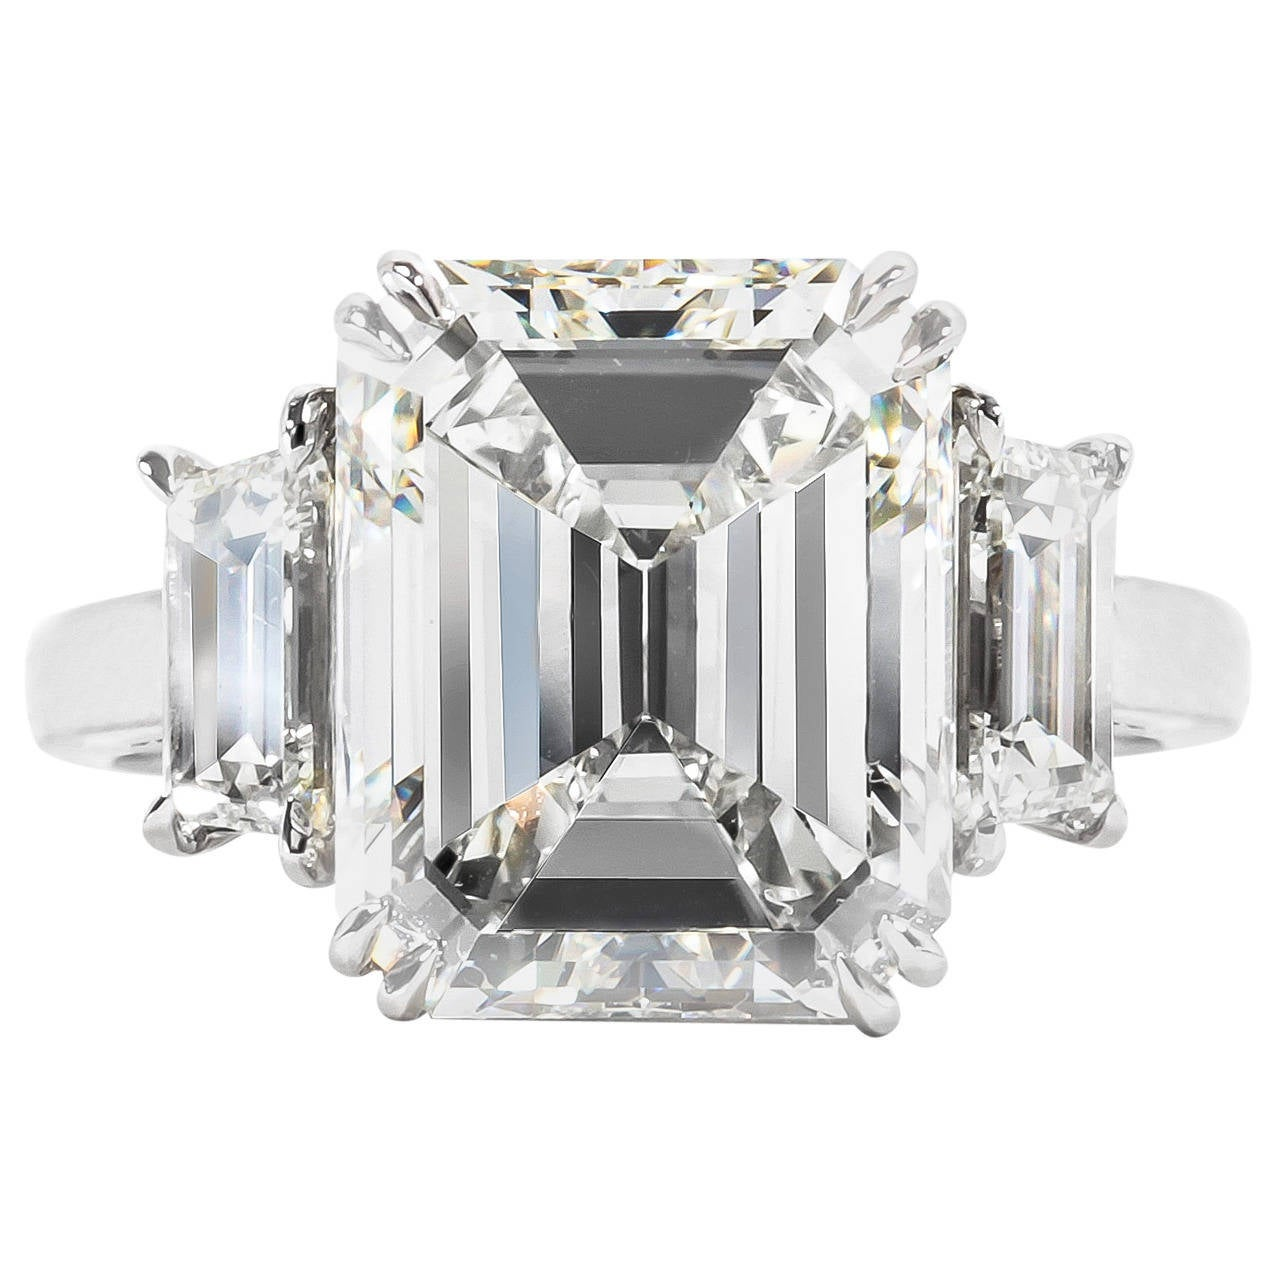 Incredible 7 Carat Gia Certified Emerald Cut Diamond Platinum Ring For Sale